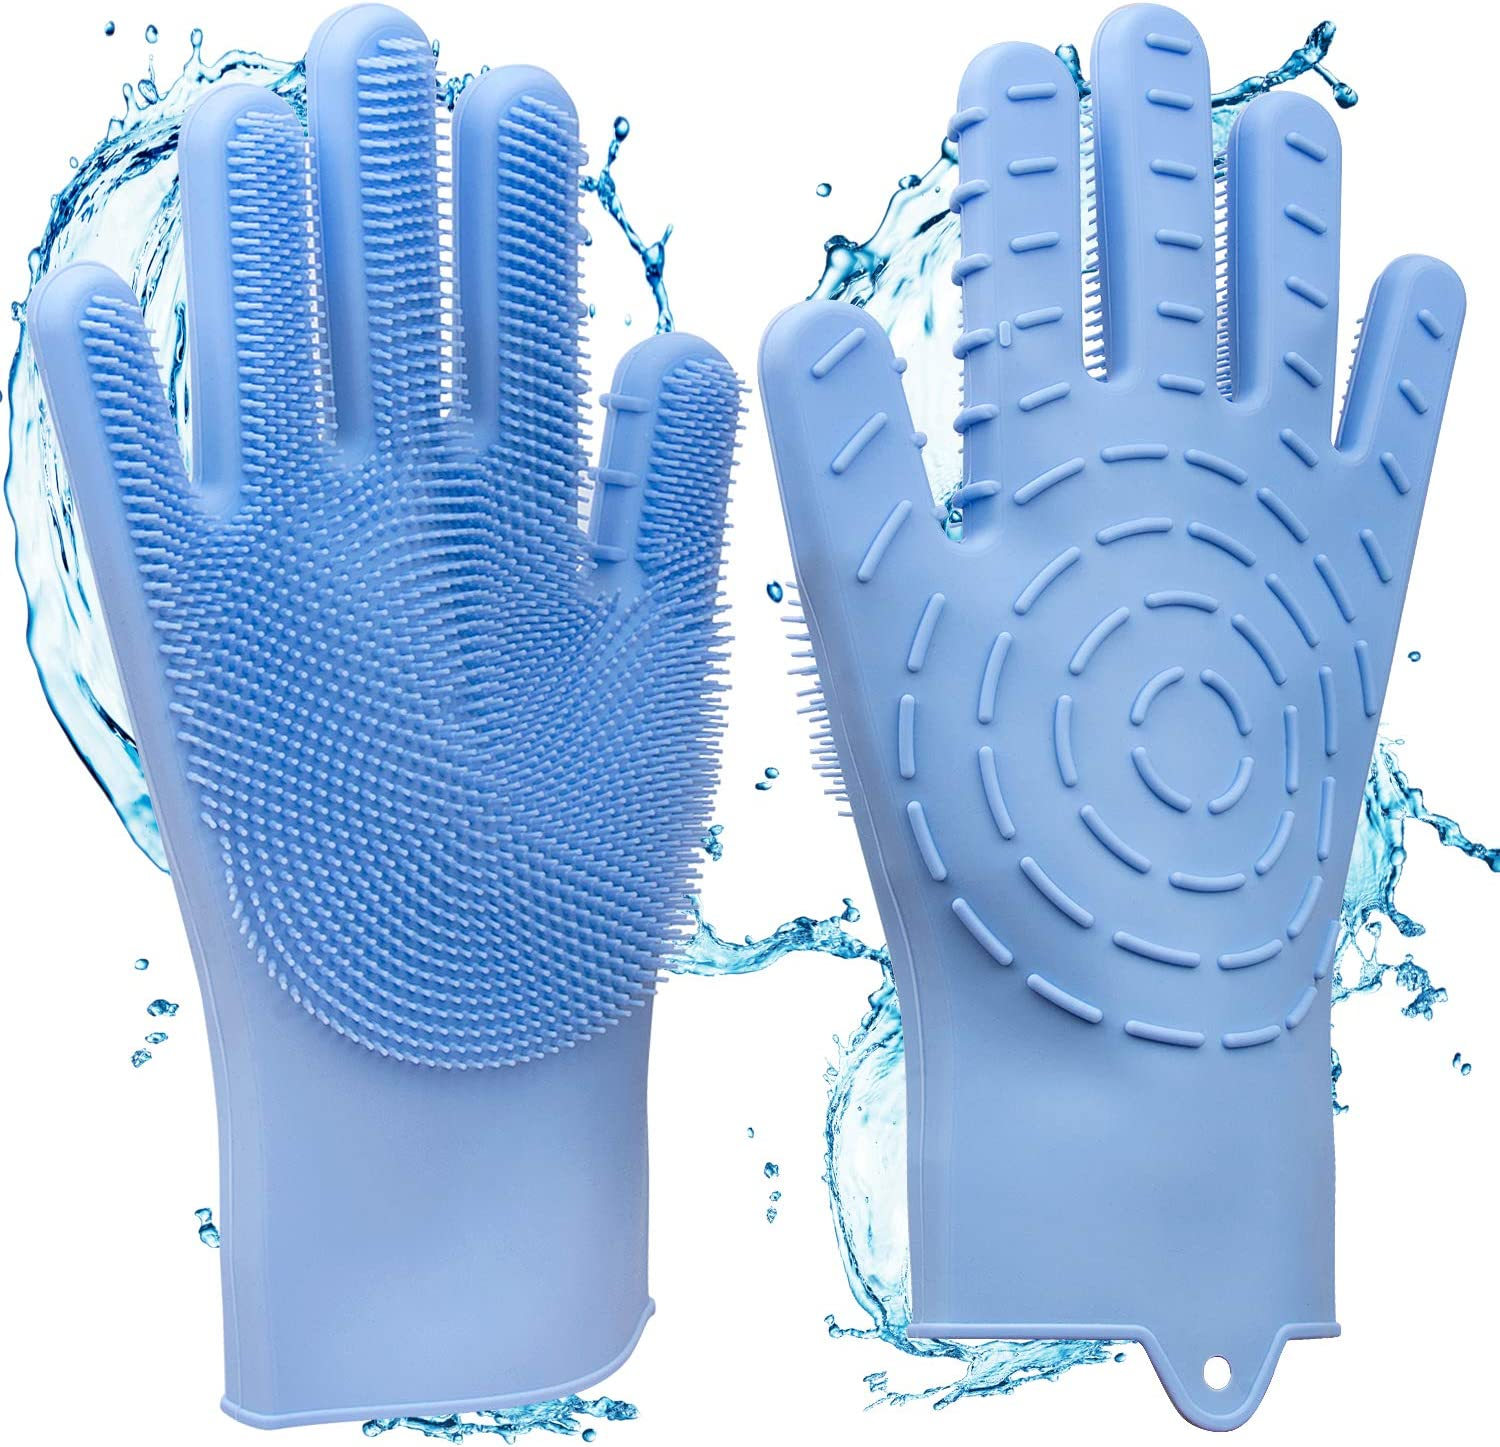 2 in 1 Magic Silicone Gloves, Dishwashing Cleaning Gloves & Heat Resistant Oven Gloves, with Wash Scrubber Non-Slip Design Great Kitchen Tool, for Dish Washing Car Washing Pet Hair Care, Blue